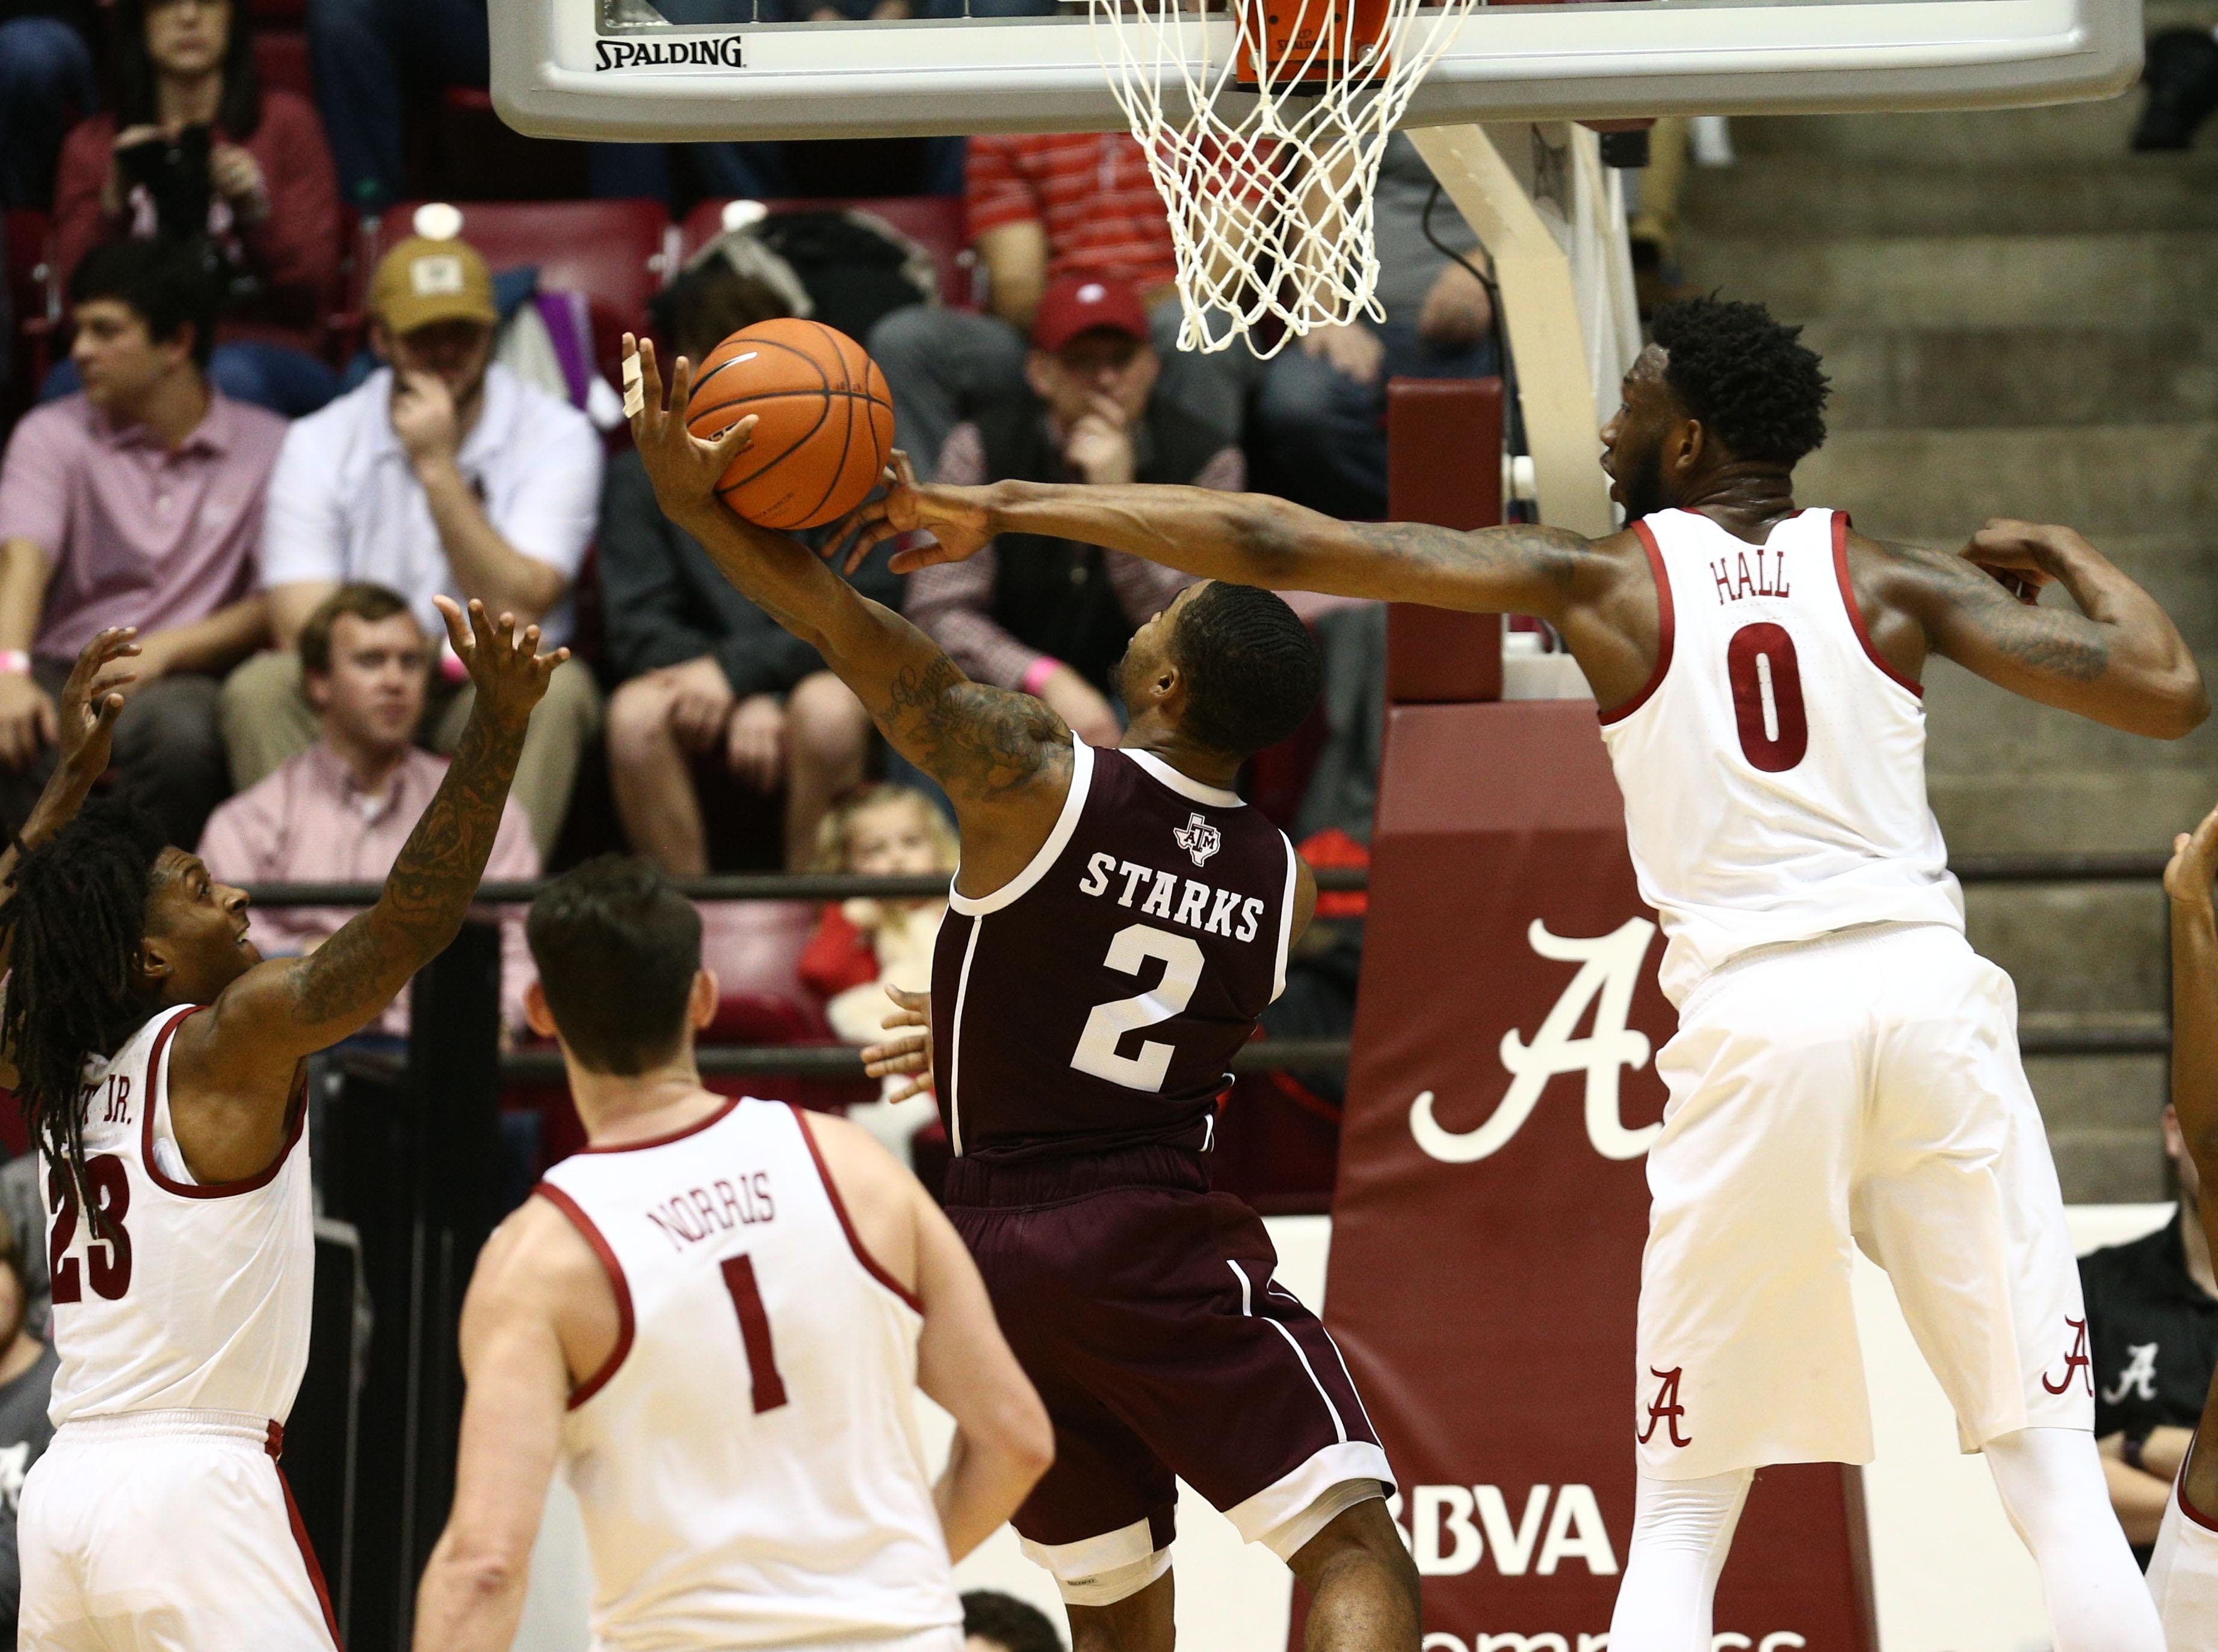 Jan 12, 2019; Tuscaloosa, AL, USA; Alabama Crimson Tide forward Donta Hall (0) blocks the shot of Texas A&M Aggies guard TJ Starks (2) during the second half at Coleman Coliseum. Mandatory Credit: Marvin Gentry-USA TODAY Sports